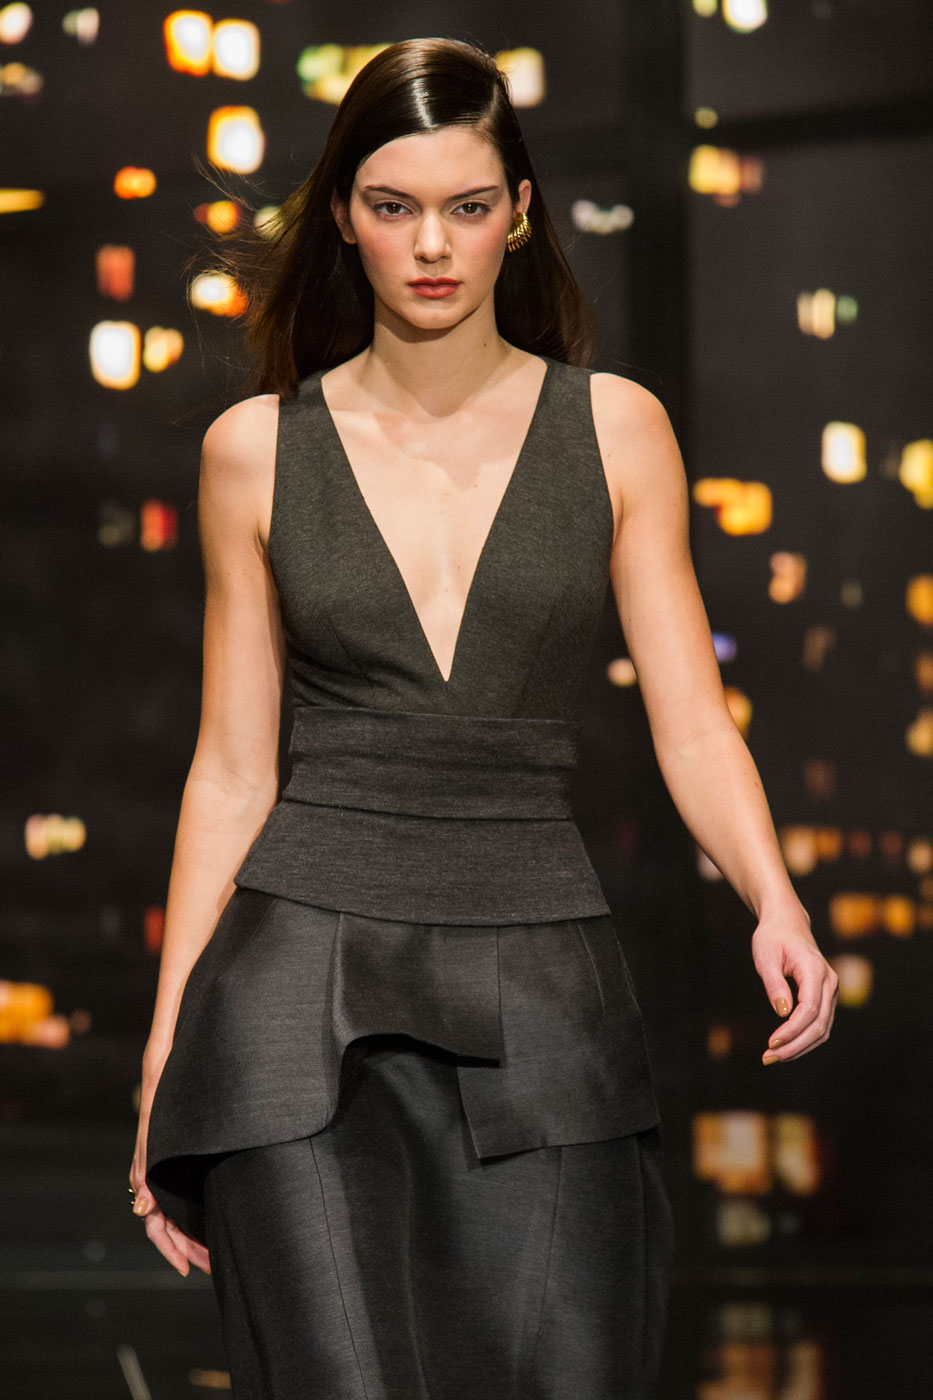 donna karan fall 2015 fashion show. Black Bedroom Furniture Sets. Home Design Ideas